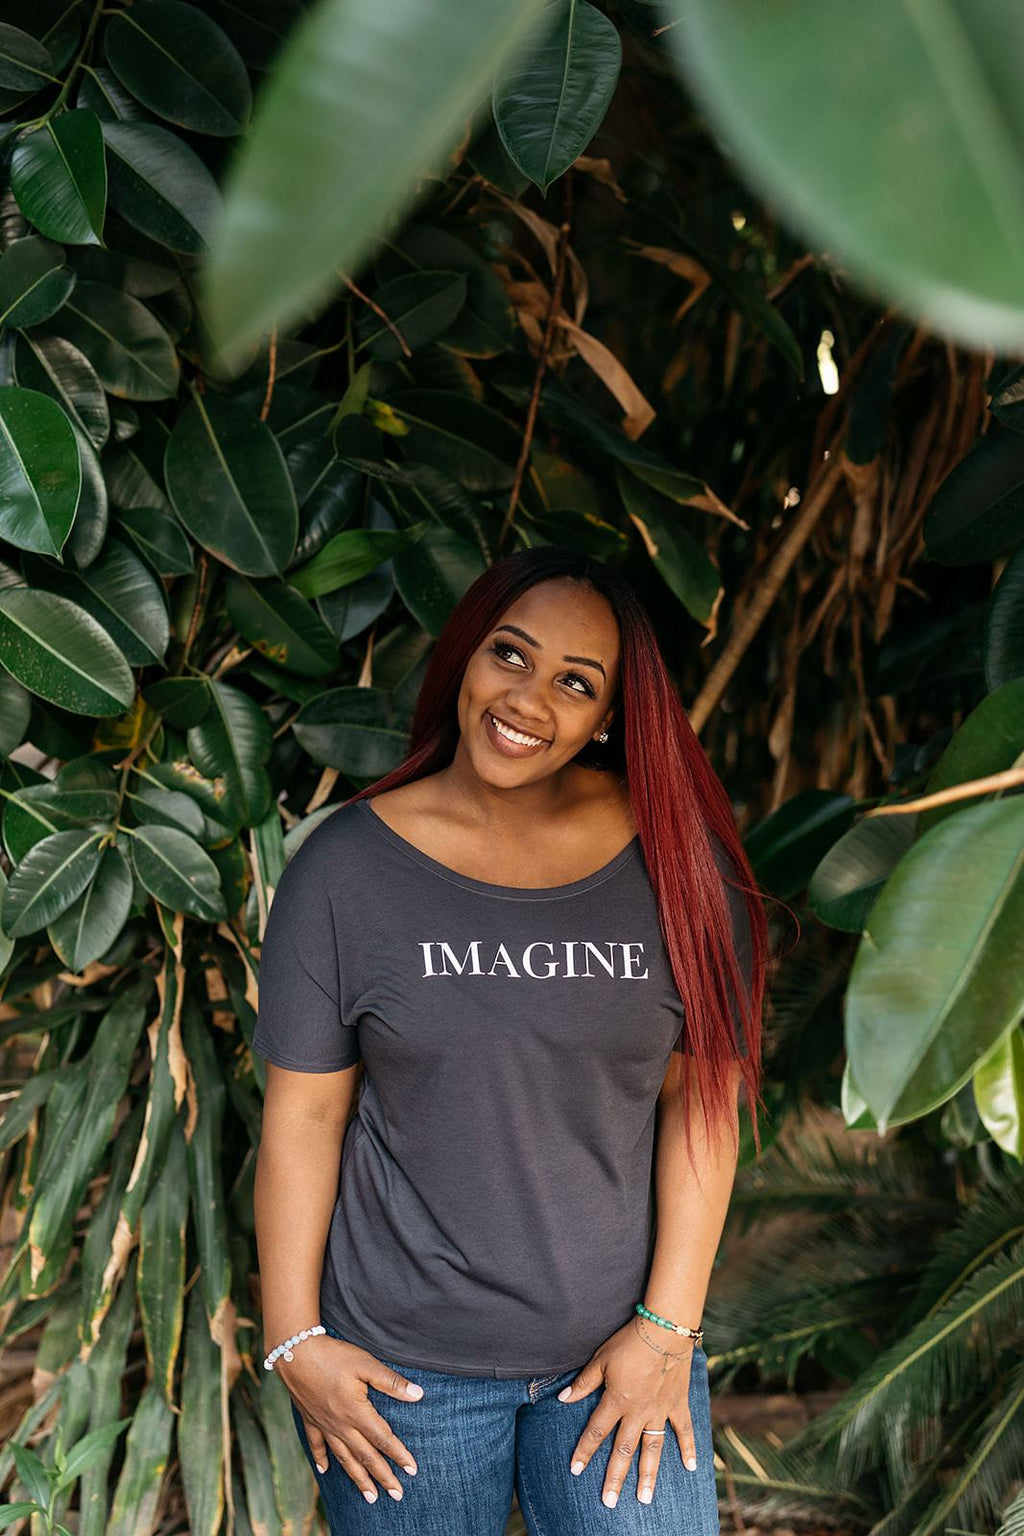 Imagine Tee - everlur spiritual clothing